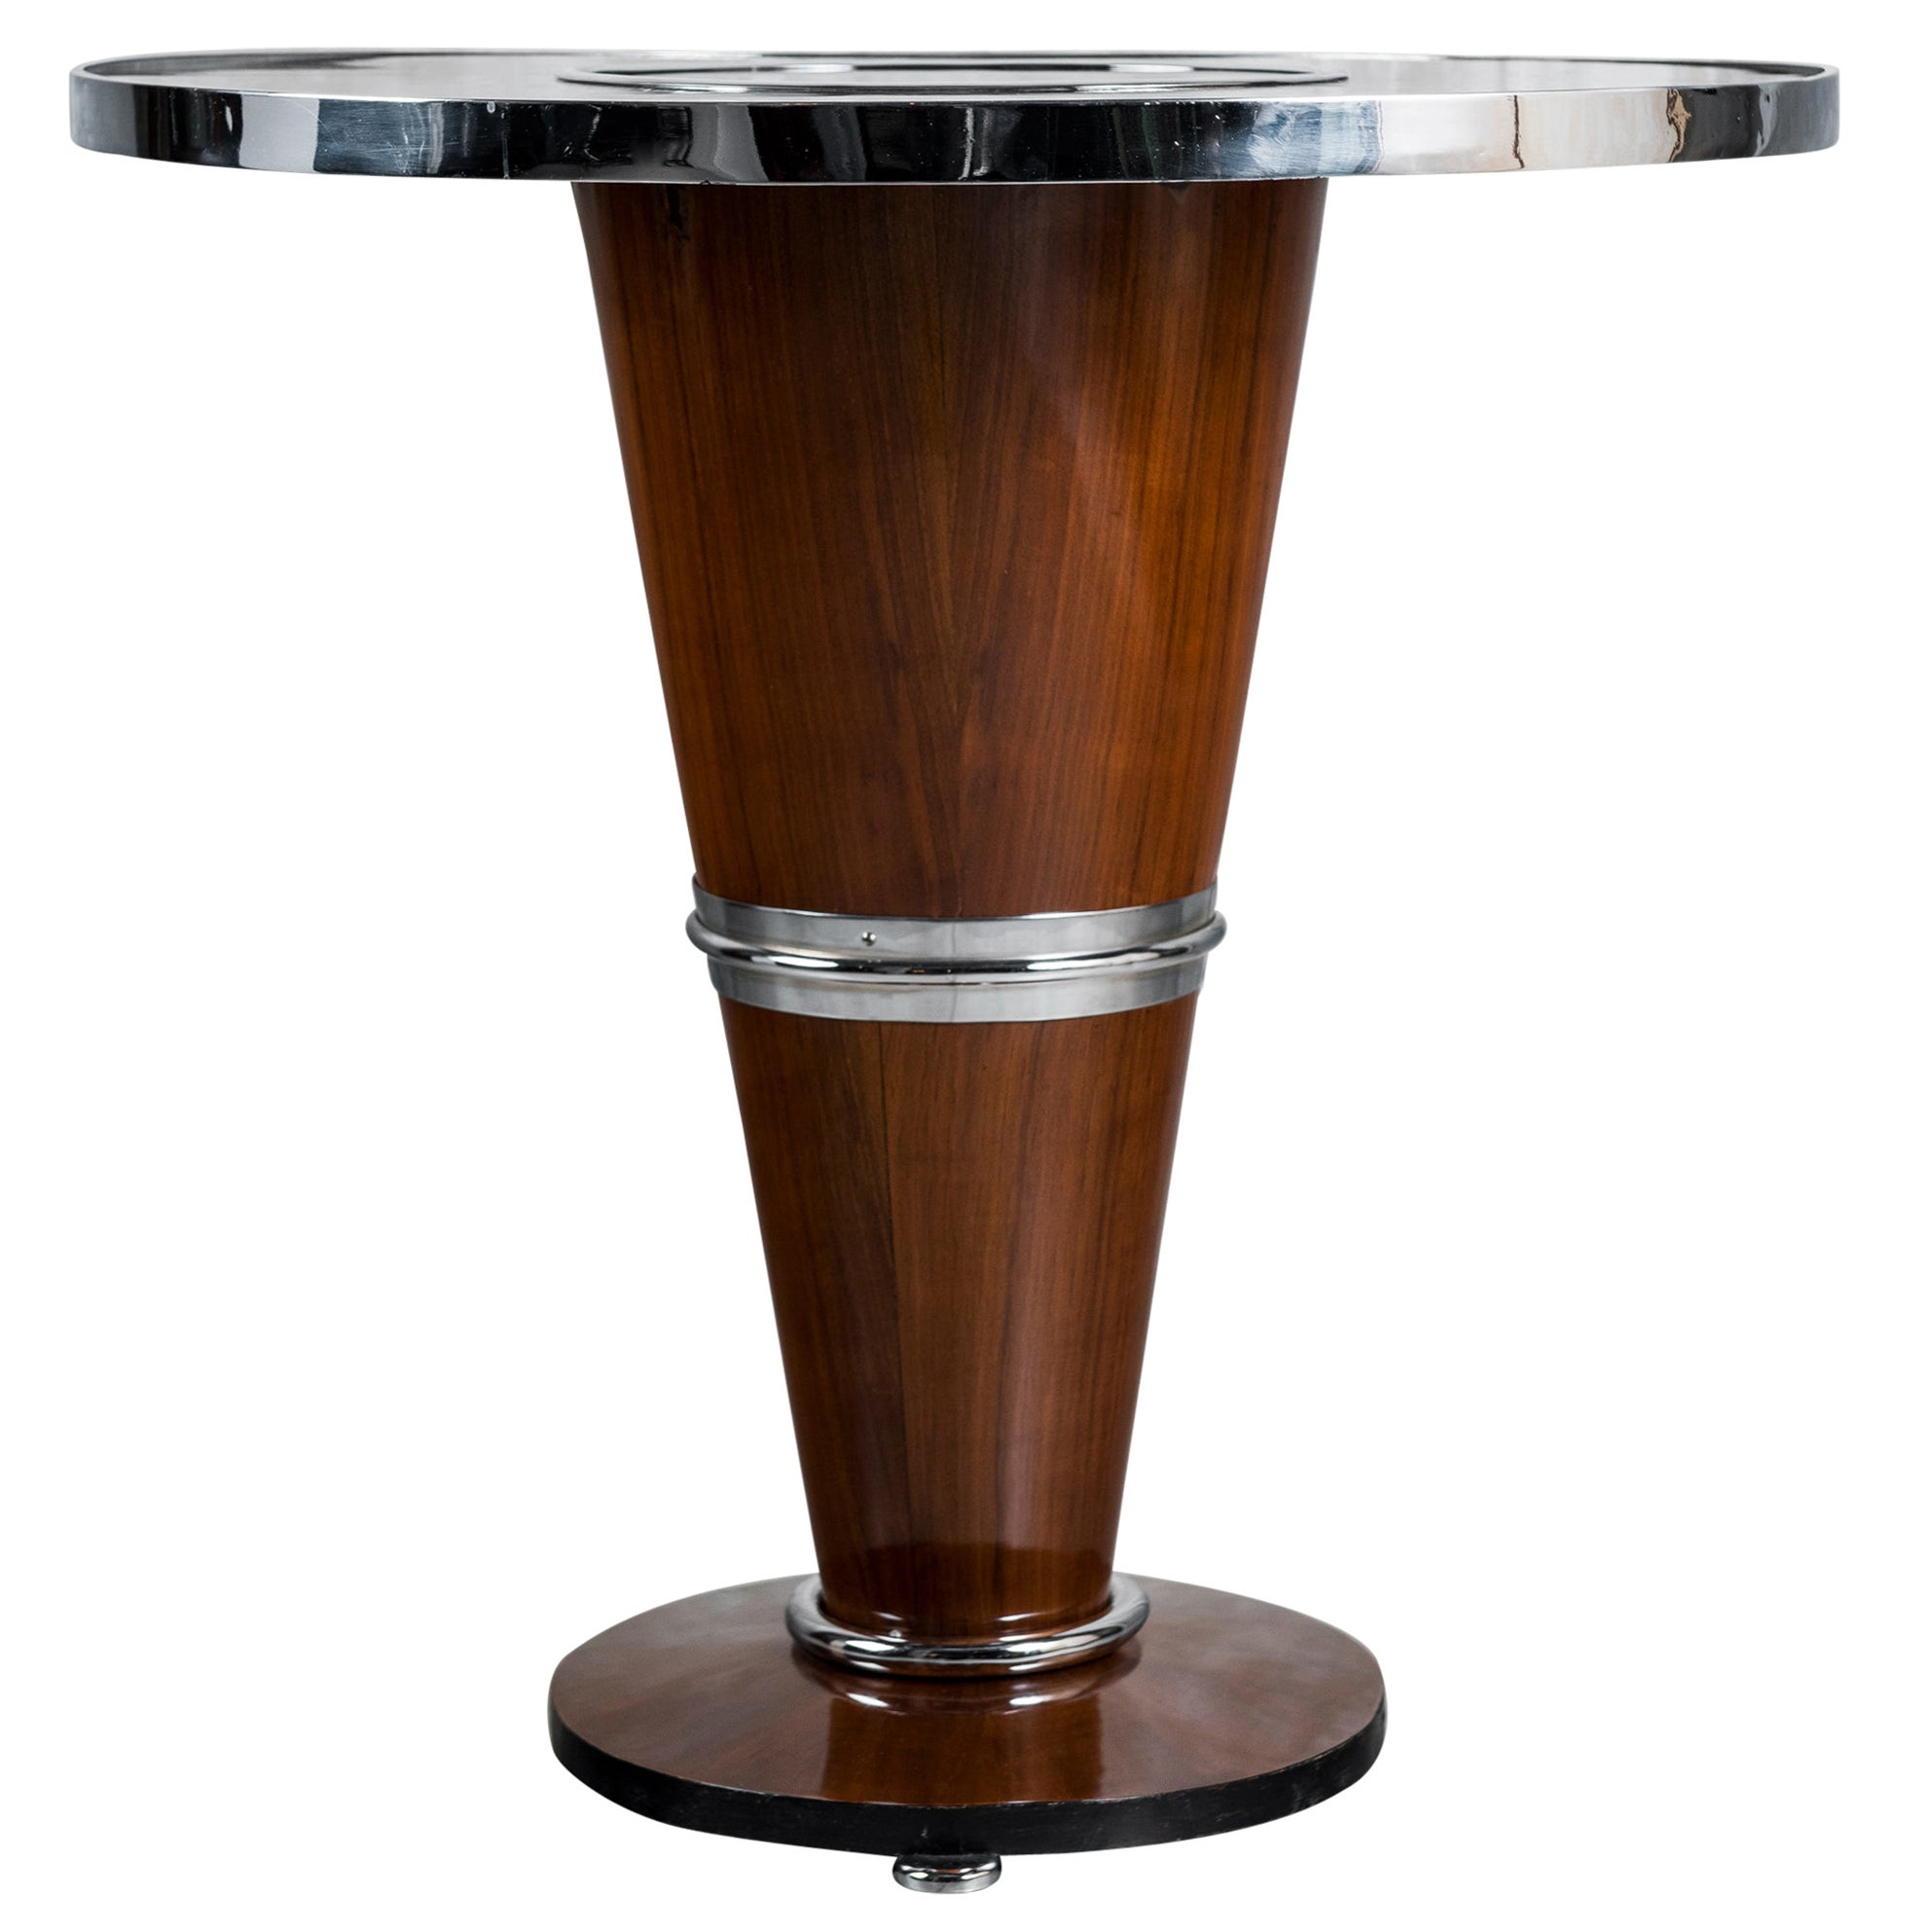 Wood, Chrome and Glass Table, Art Deco Period, France, circa 1930-1940